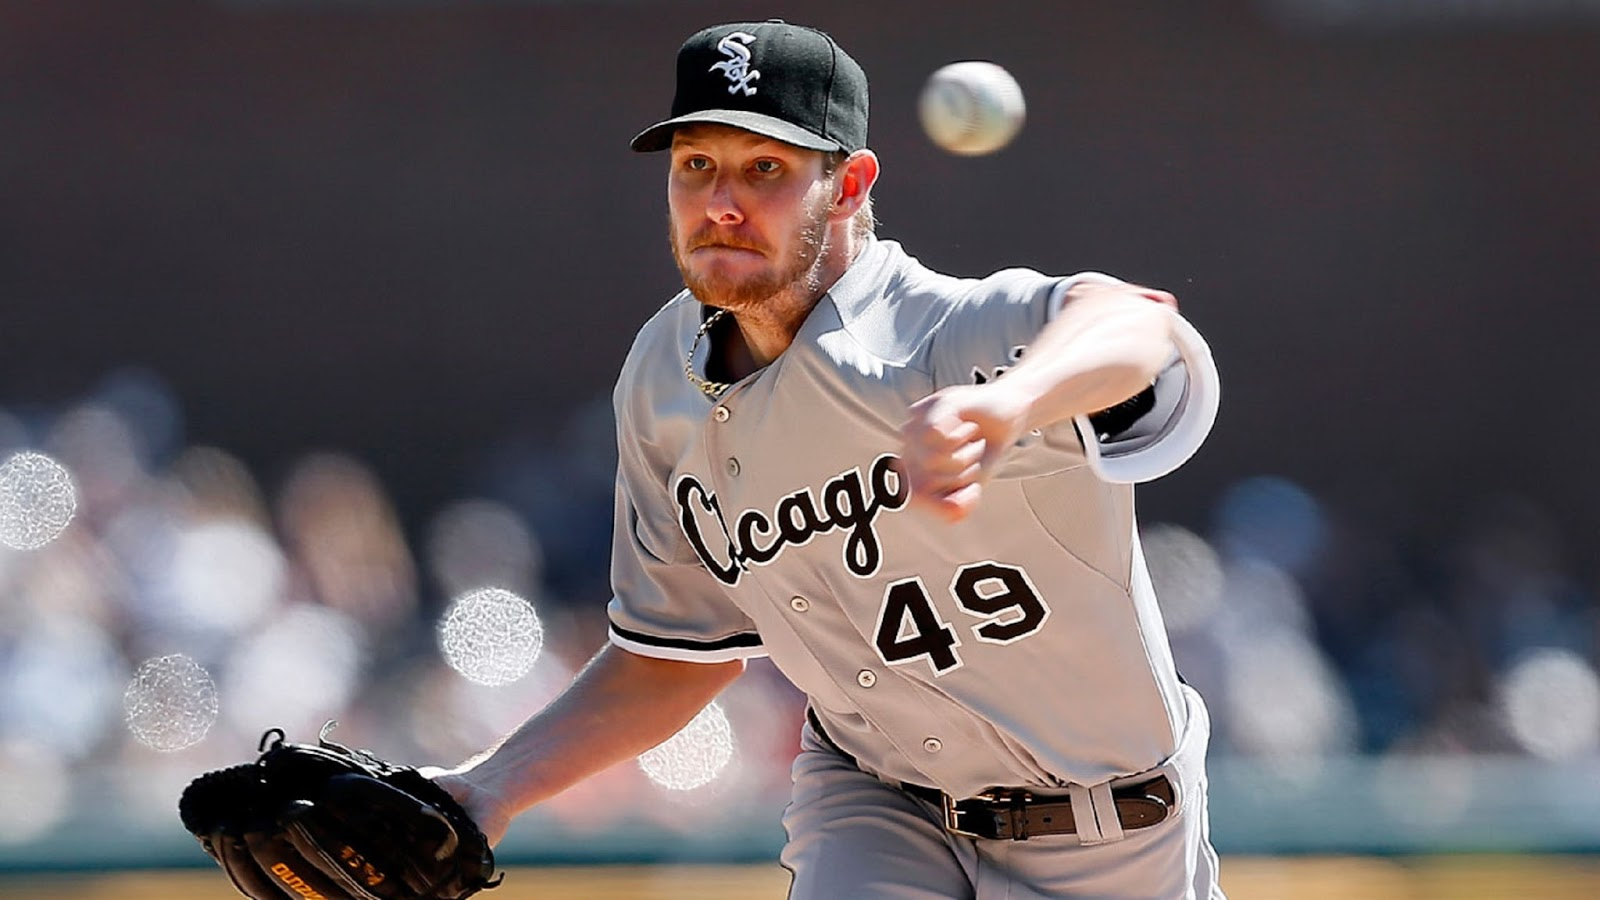 CHRIS SALE 5